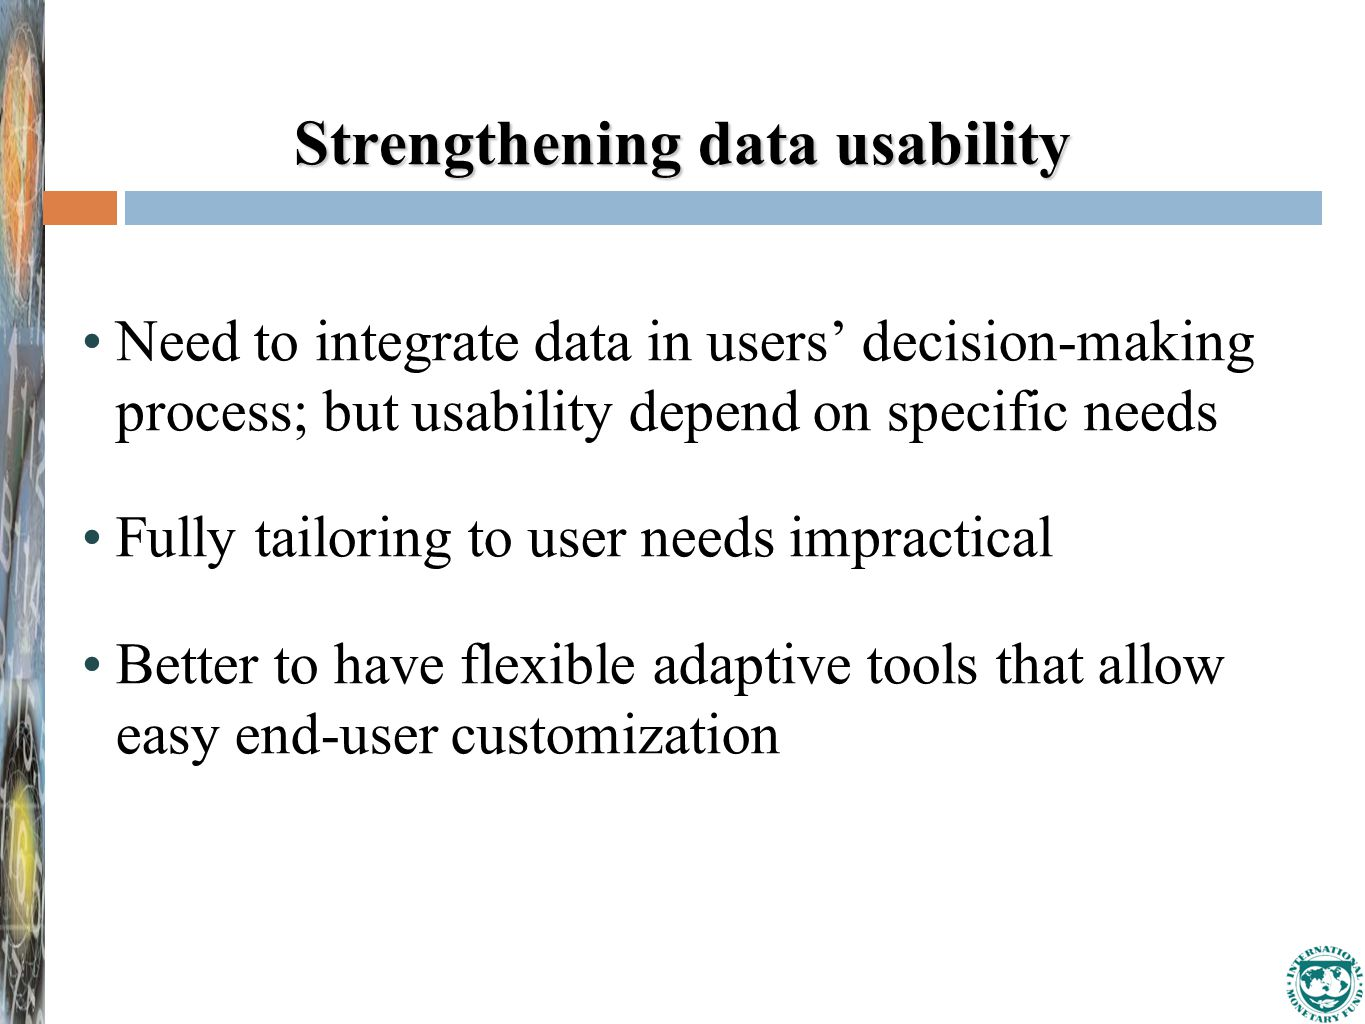 Strengthening data usability Need to integrate data in users' decision-making process; but usability depend on specific needs Fully tailoring to user needs impractical Better to have flexible adaptive tools that allow easy end-user customization